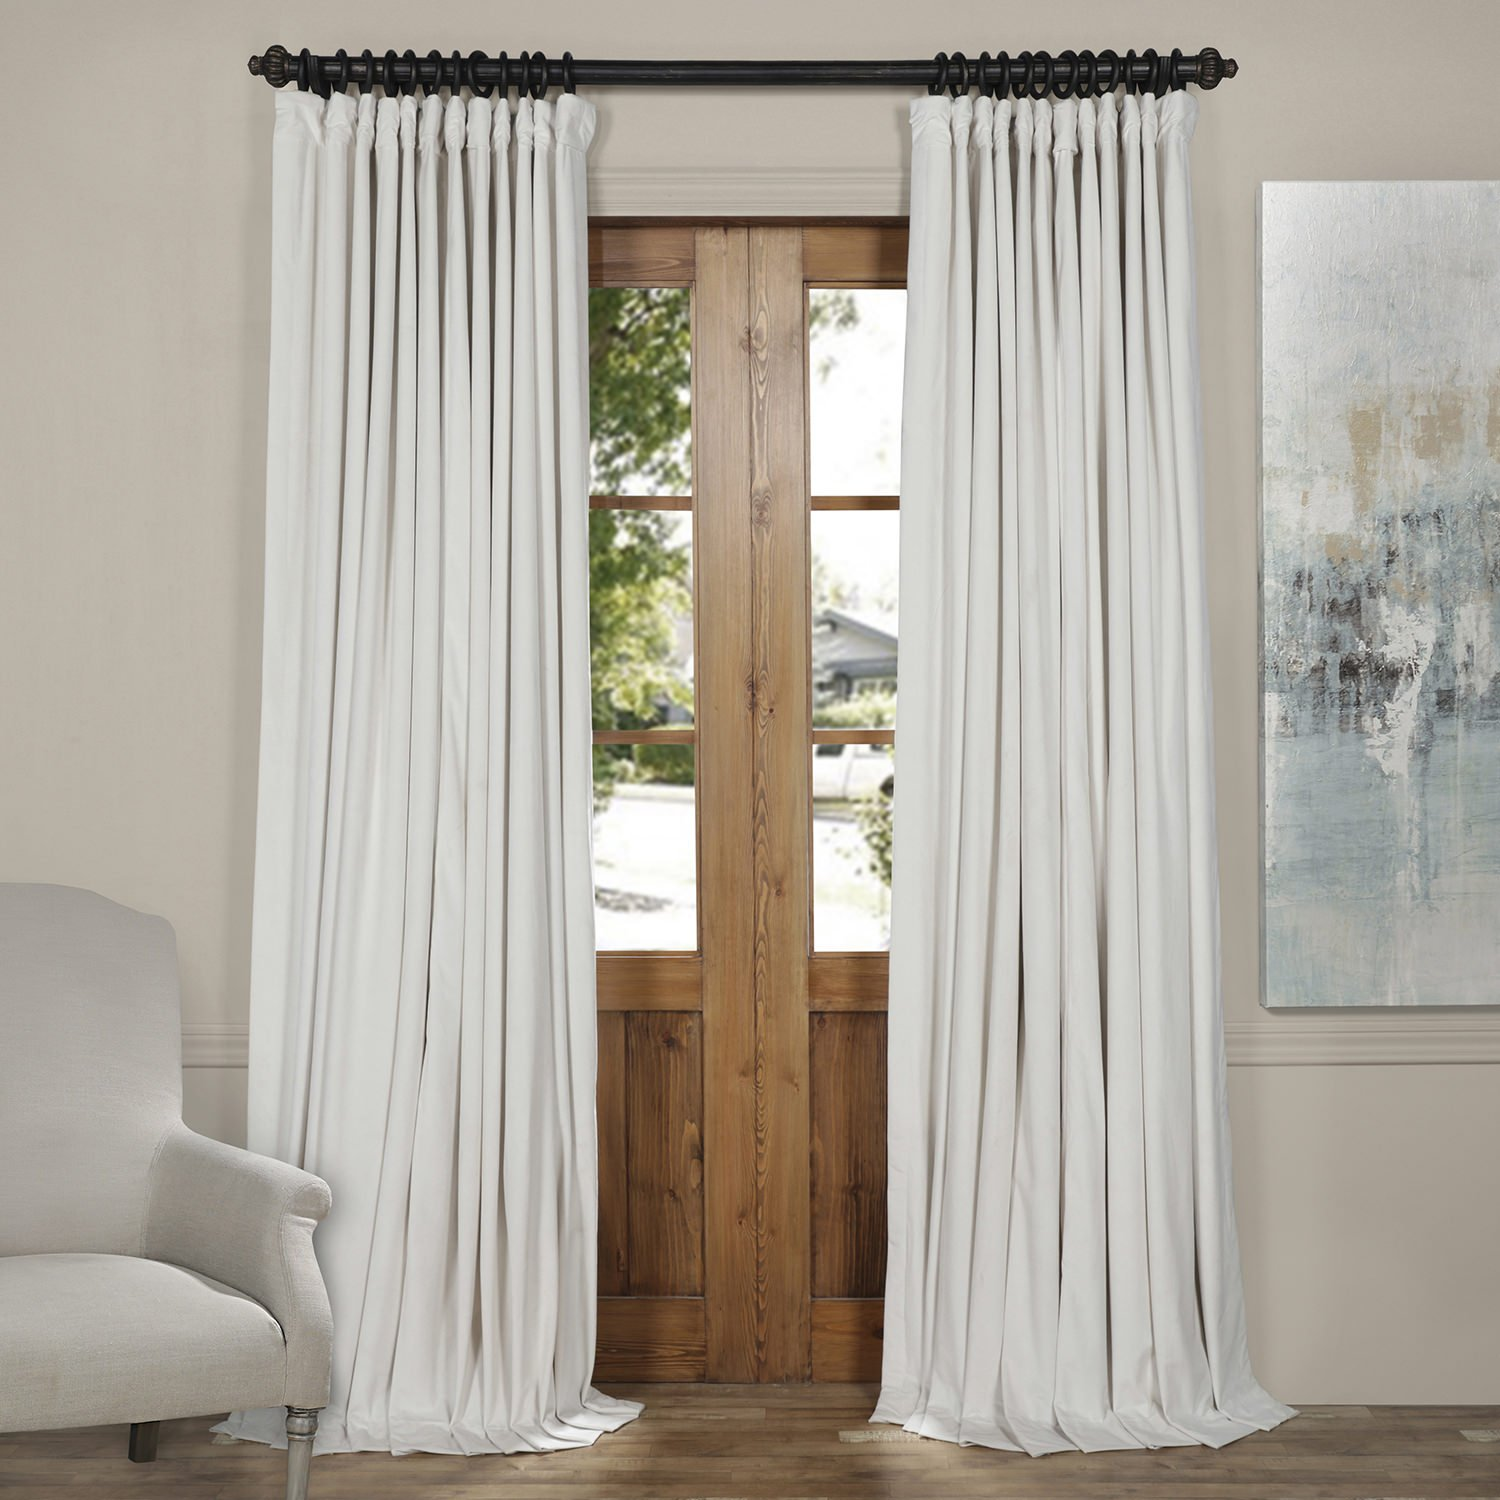 Half Price Drapes VPCH-VET1219-120 Signature Doublewide Blackout Velvet Curtain, Off White, 100 X 120